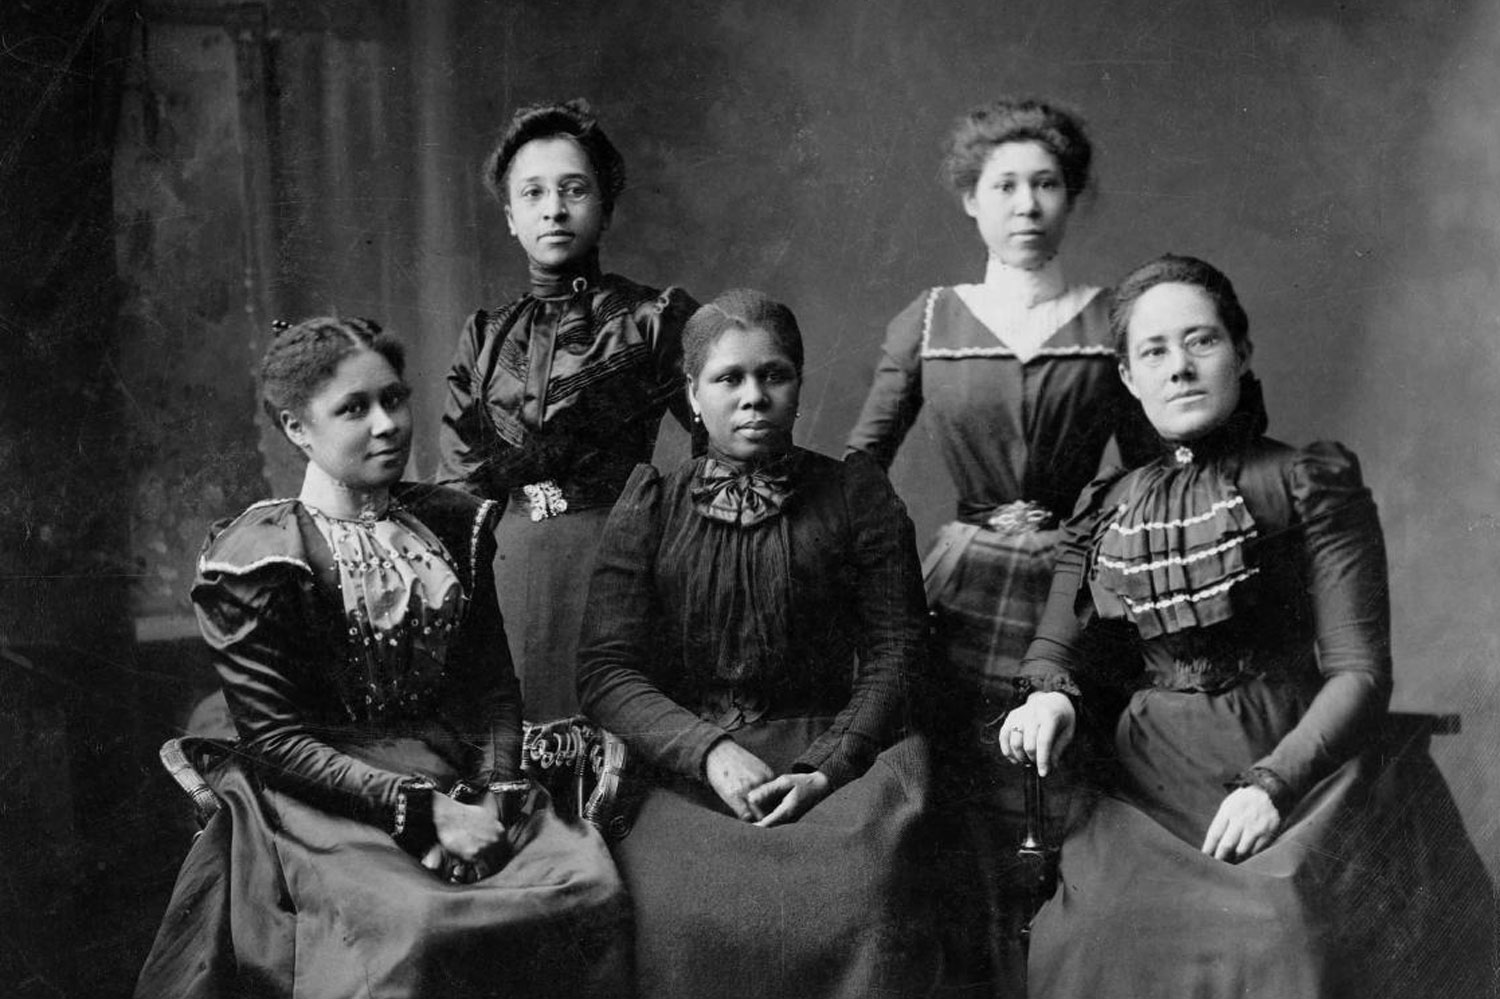 The 19th Amendment Did Not Benefit All Women Equally